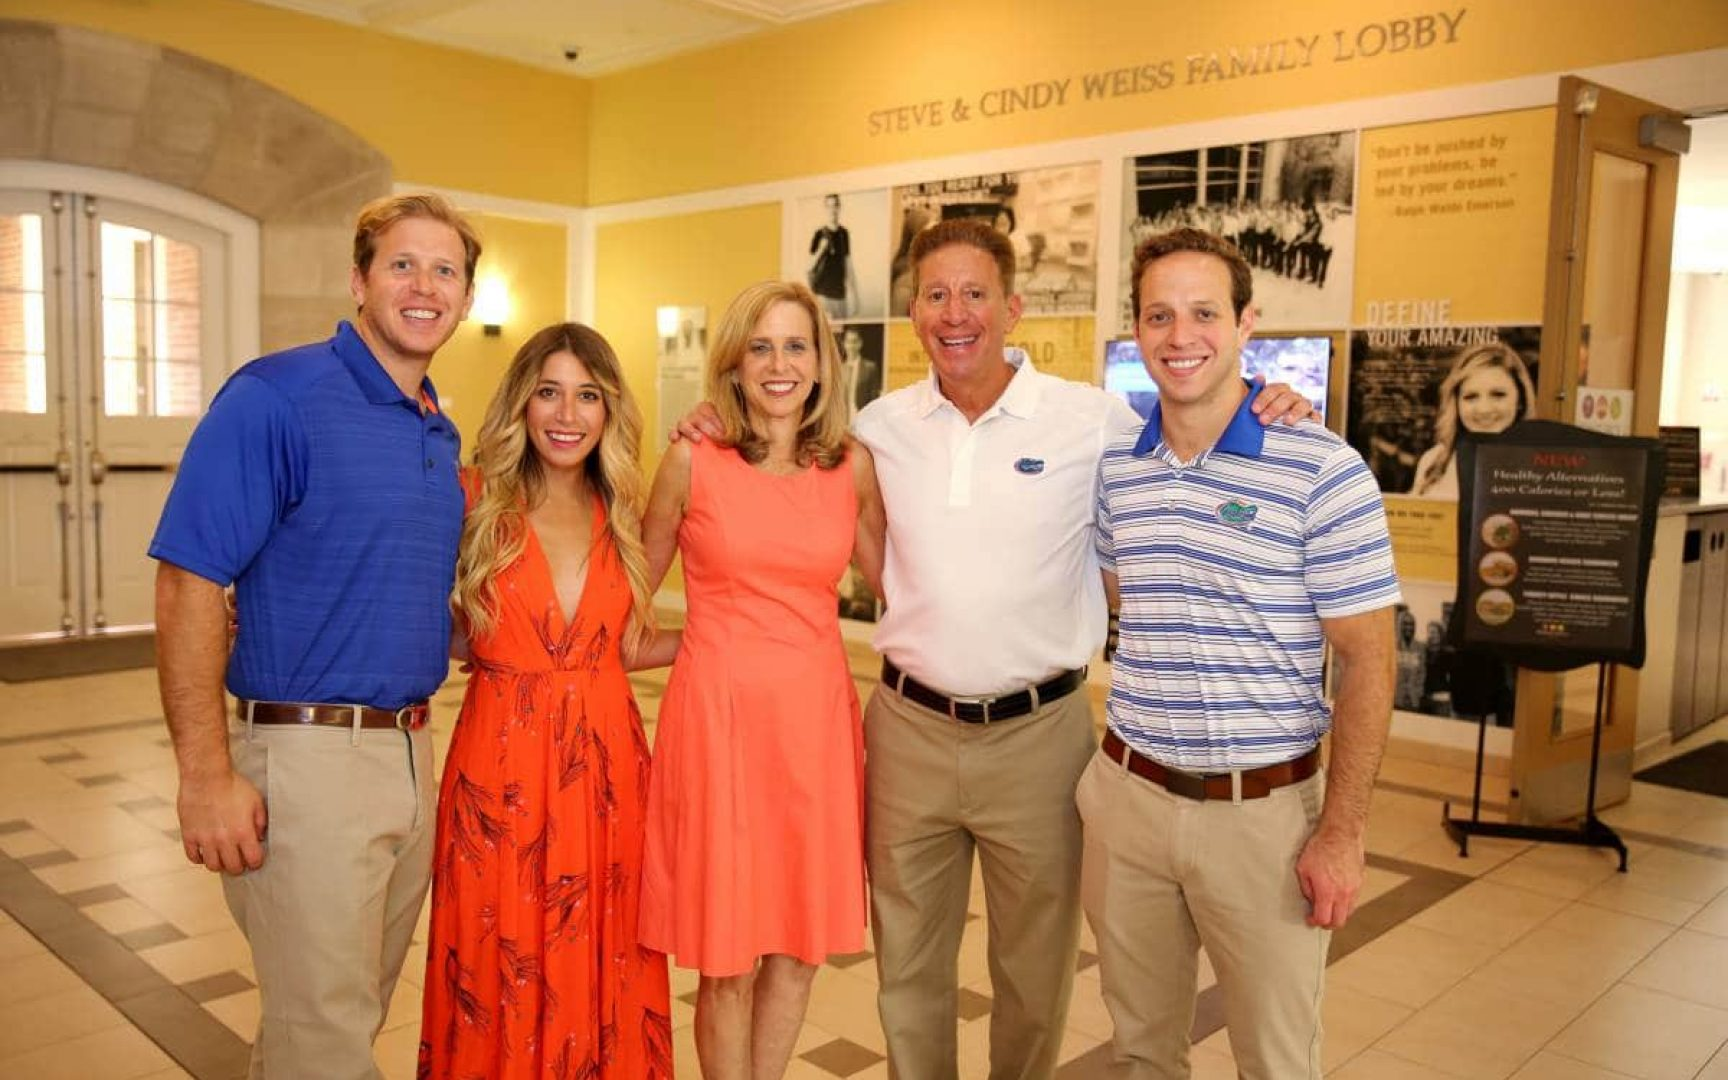 Steve and Cindy Weiss pose with their two sons and daughter in the Steve & Cindy Weiss Family Lobby in Heavener Hall